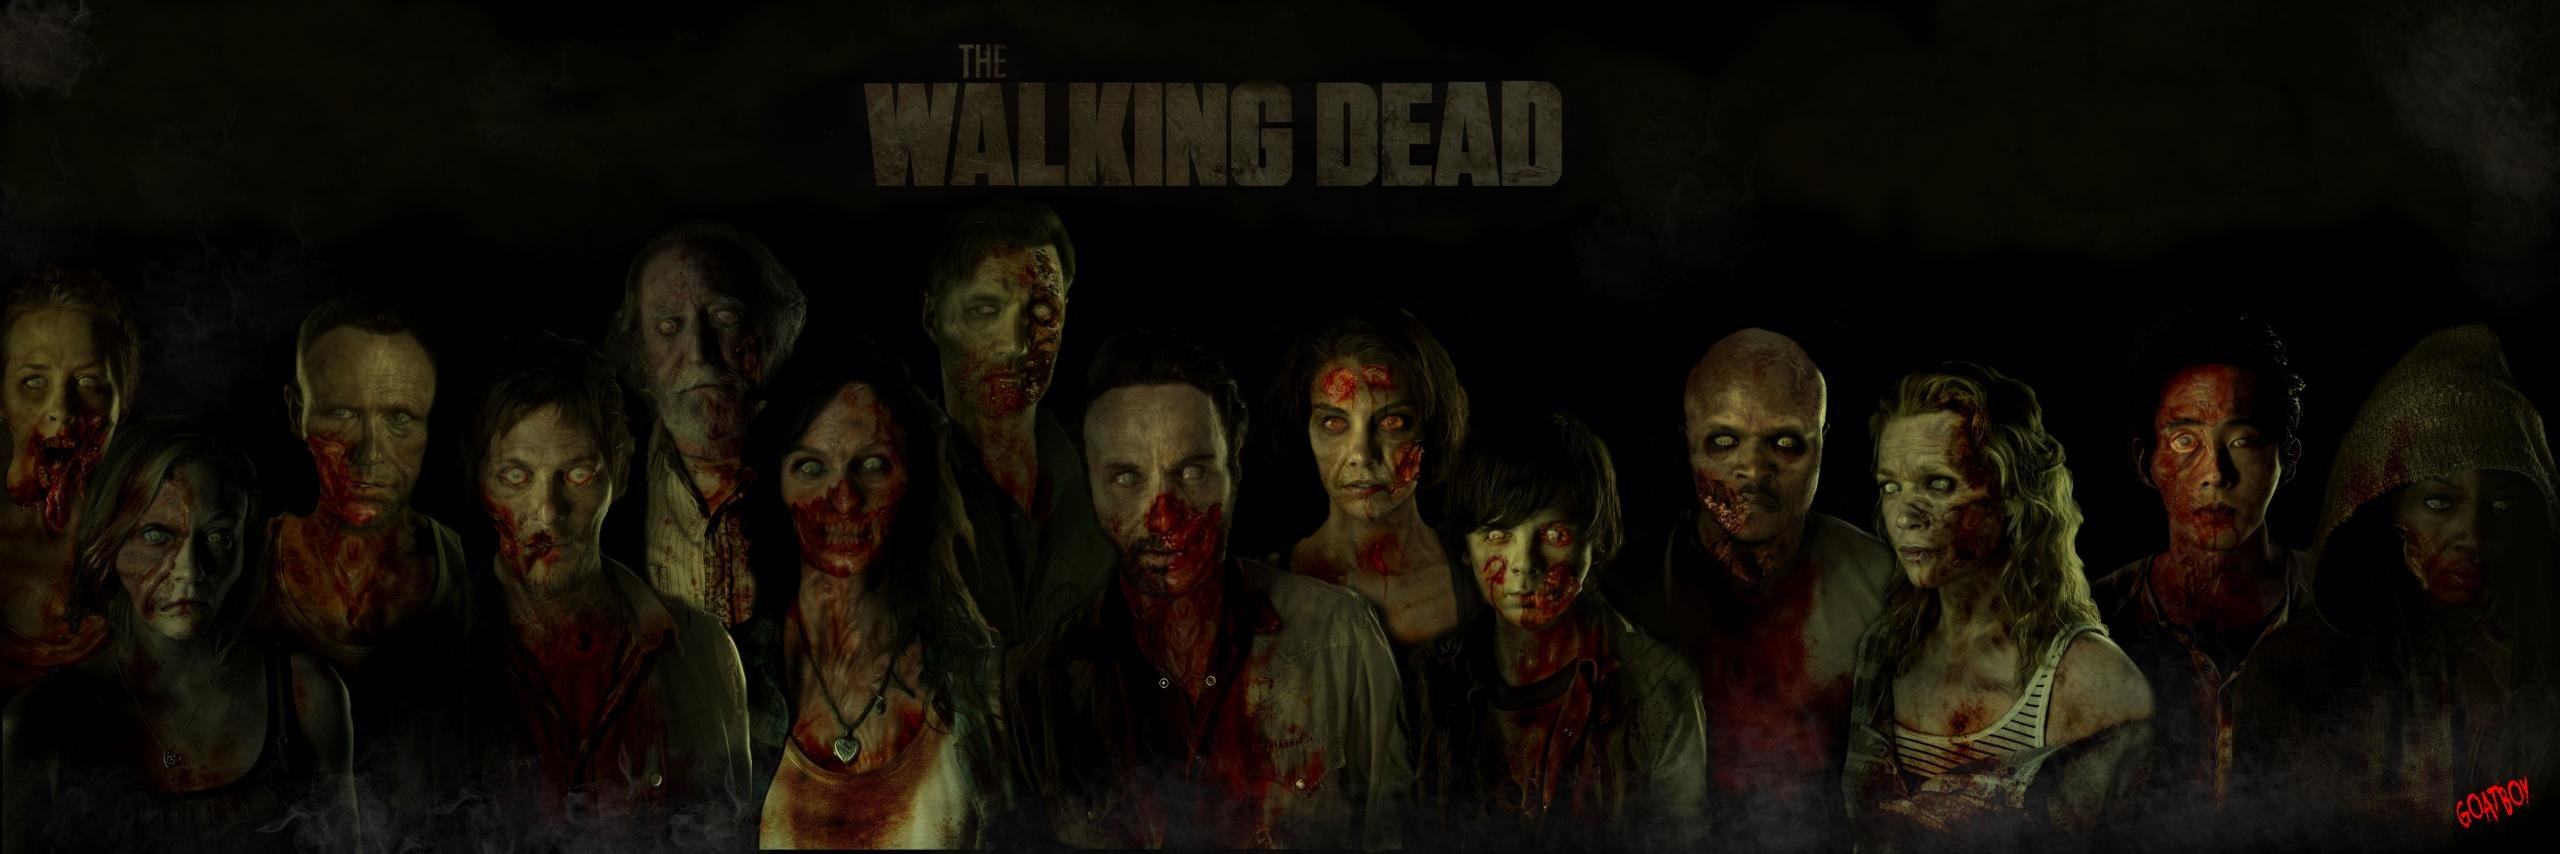 2560x854 Dual monitor The Walking Dead wallpapers, HD backgrounds